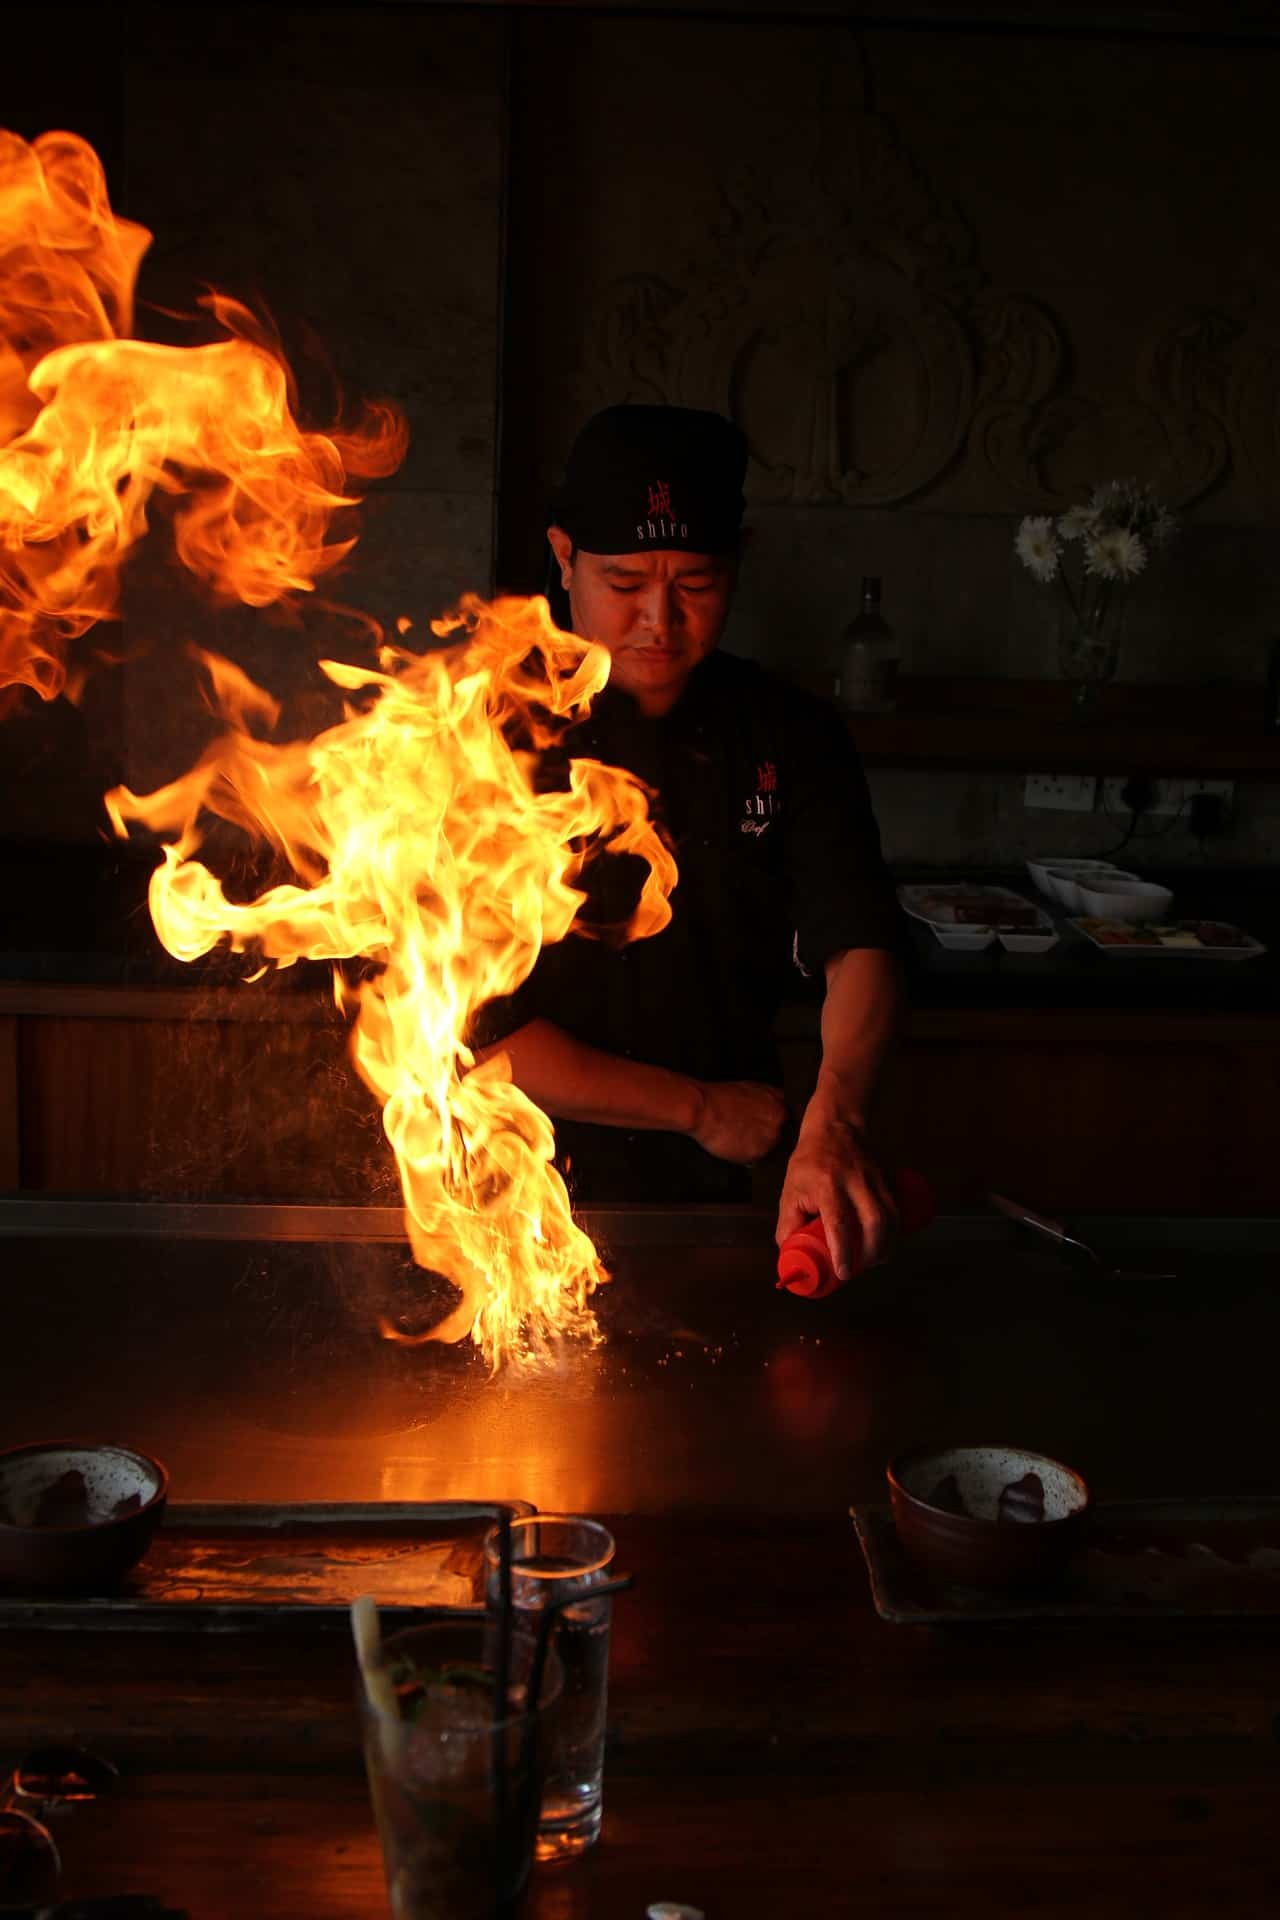 a chef is doing one of teppanyaki tricks, Onion Volcano.